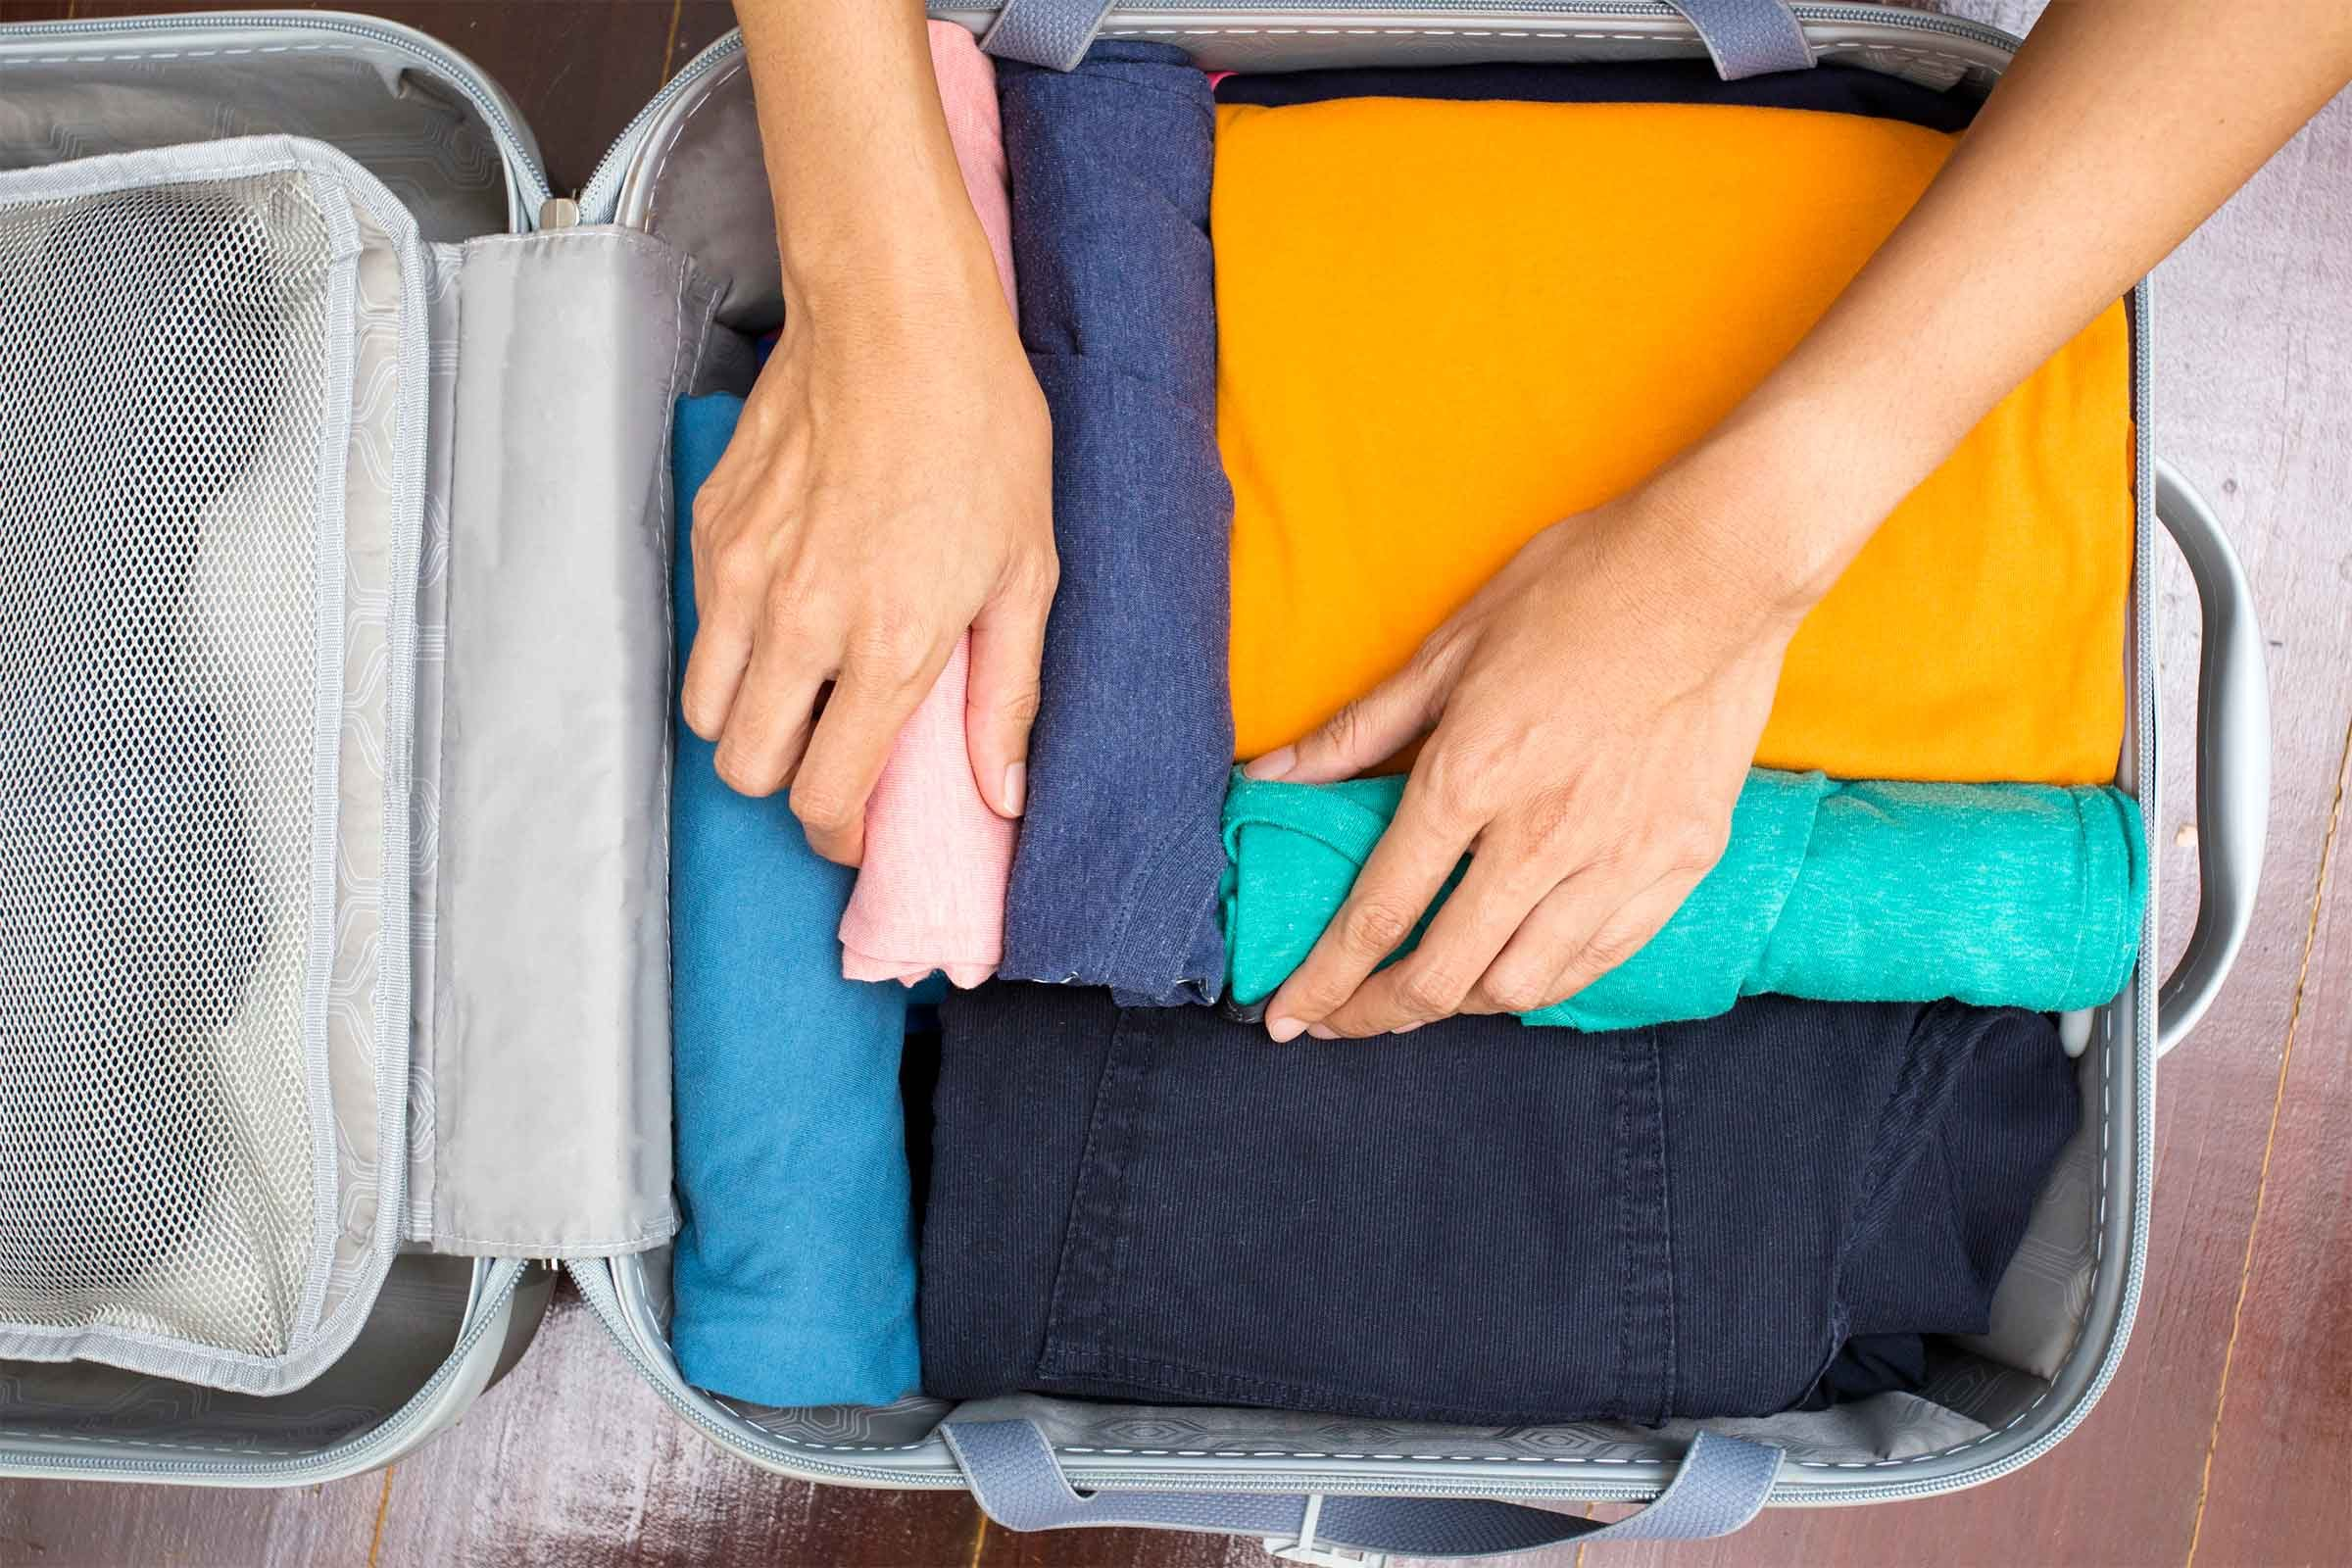 Carry-On Luggage: Best Tips for Packing Light